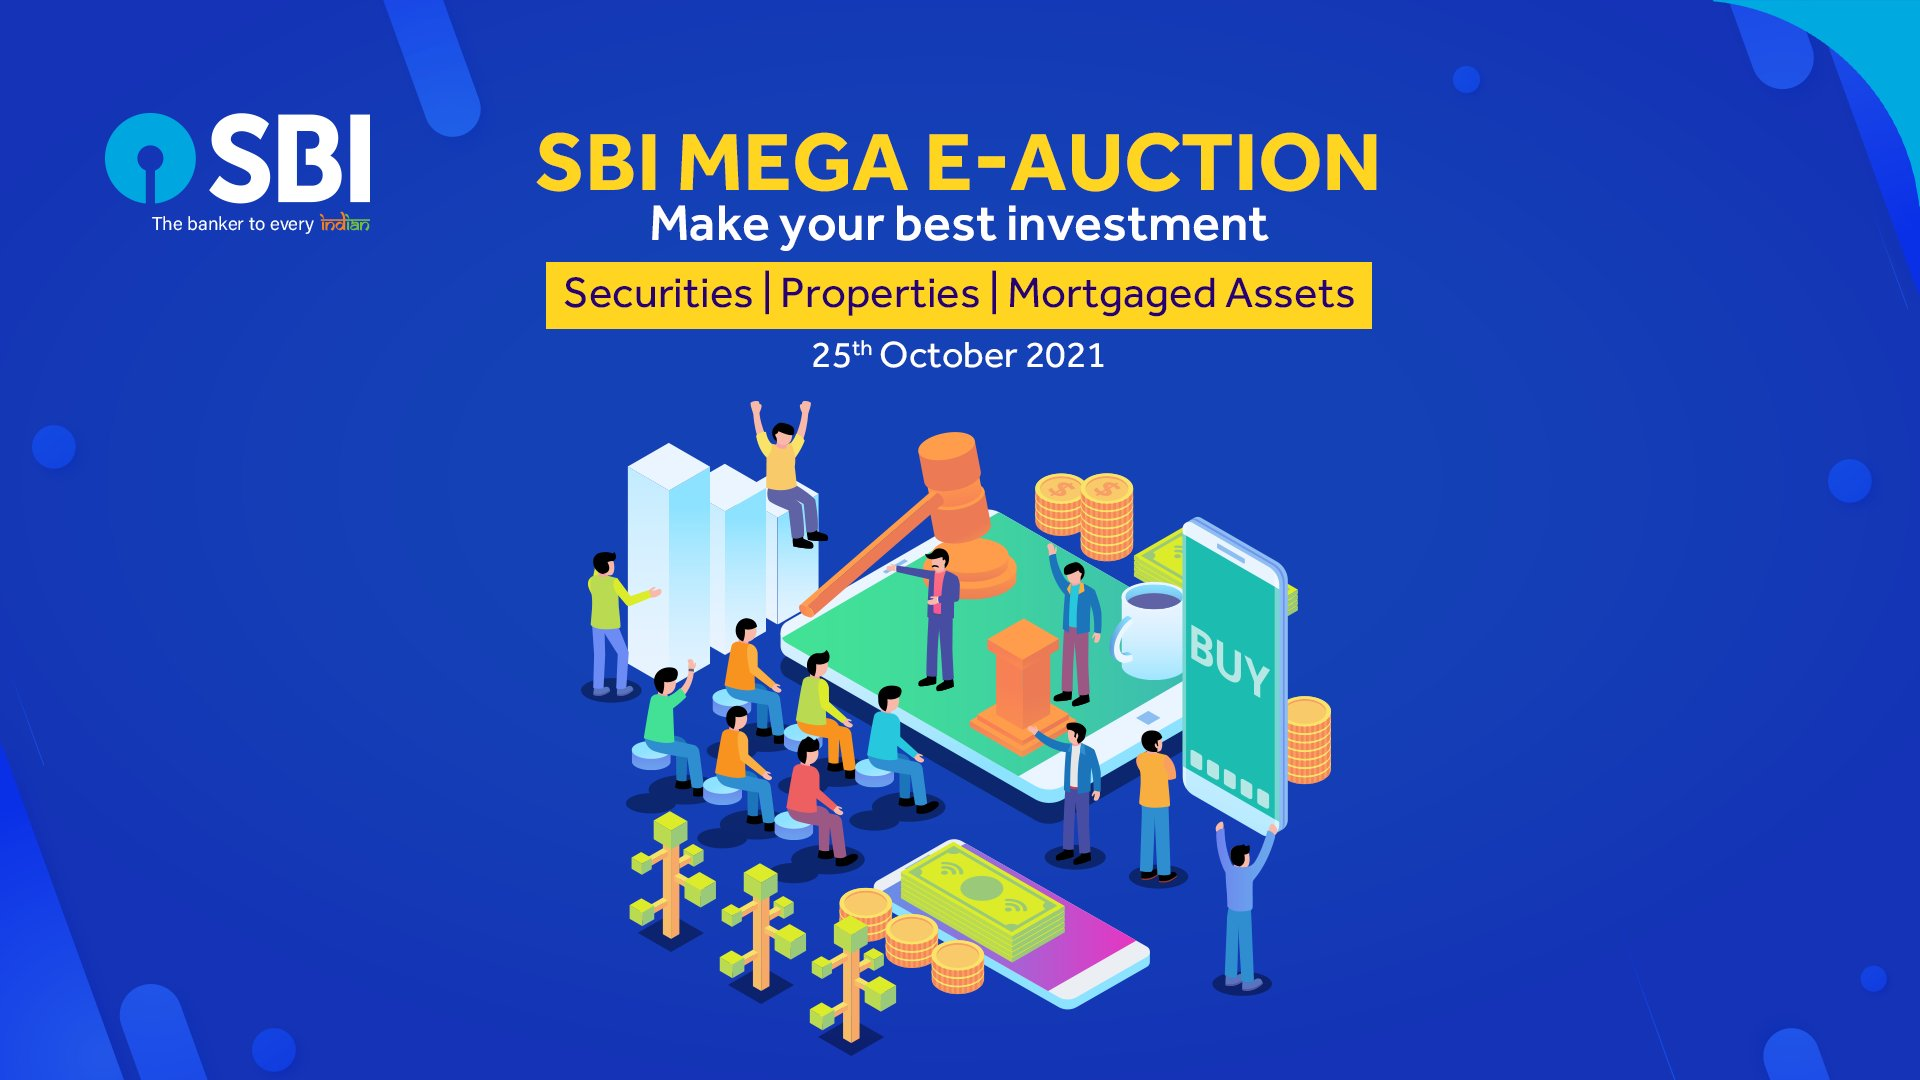 SBI puts up properties for e-auction